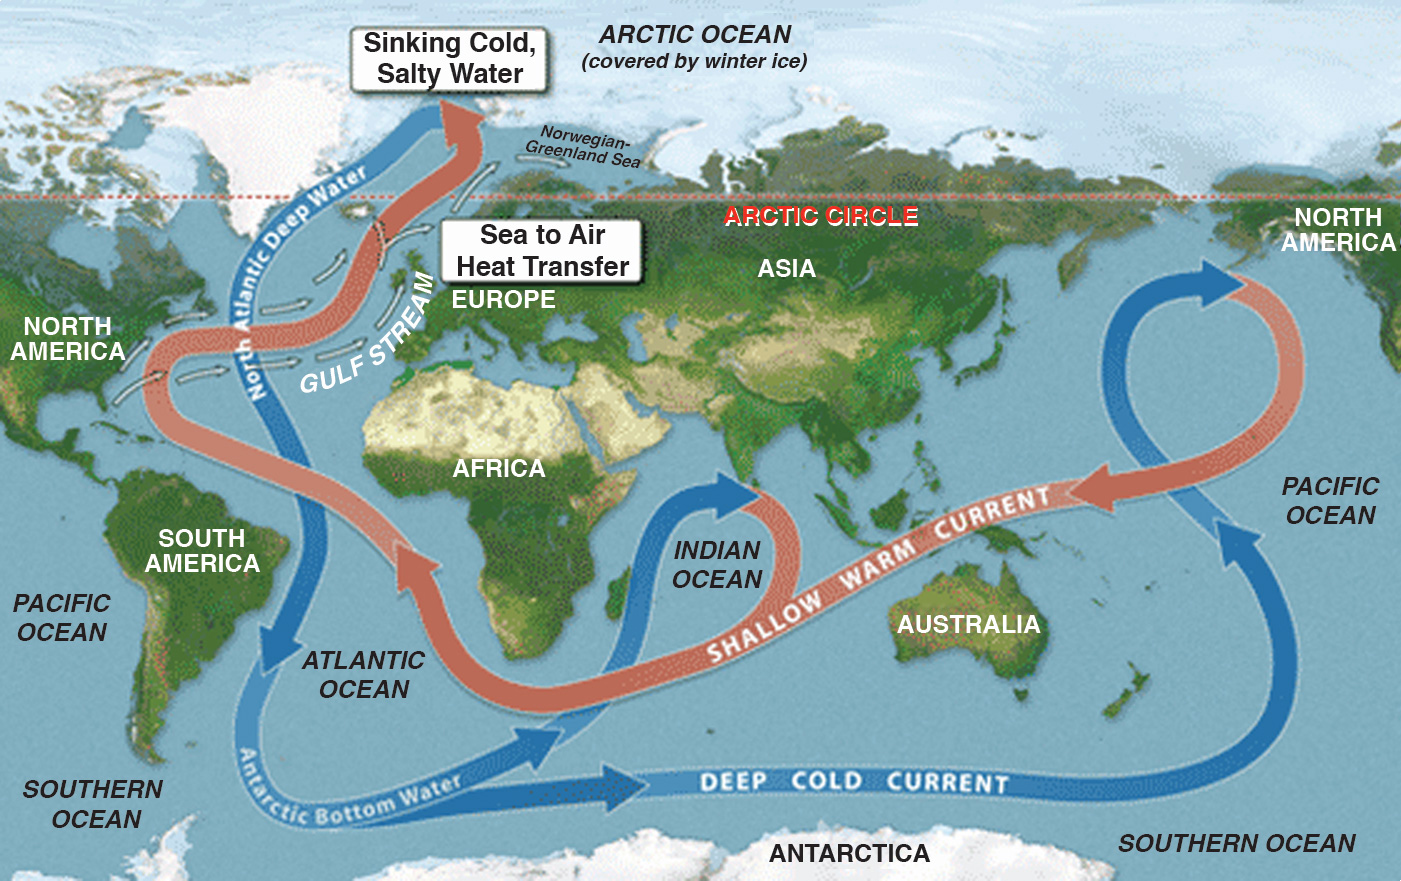 The day before yesterday: when abrupt climate change came ...